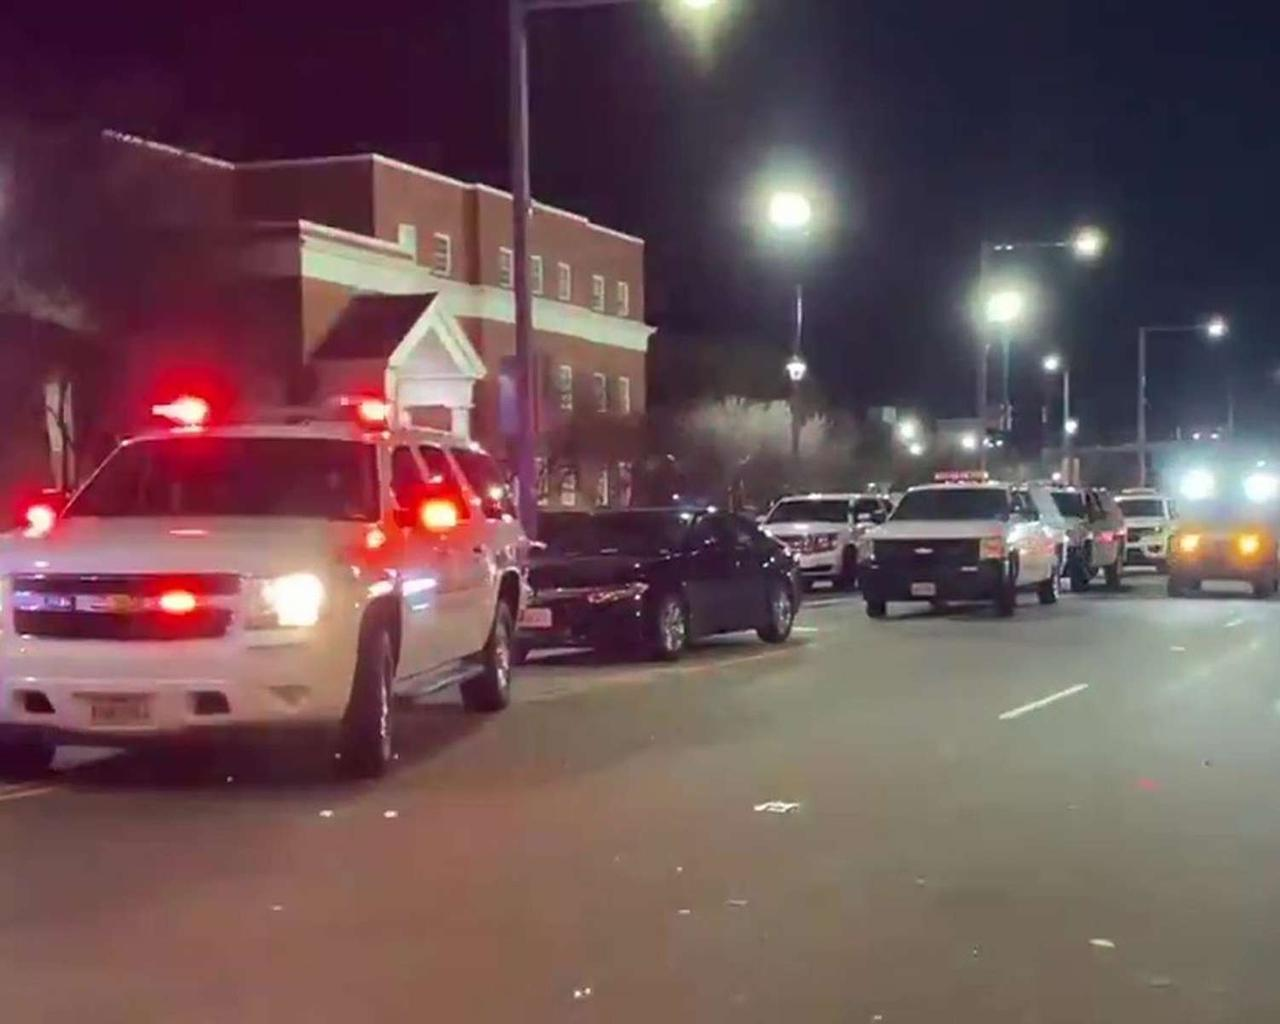 Two were killed and eight others were injured in a night shooting at the Virginia Beach Oceanfront